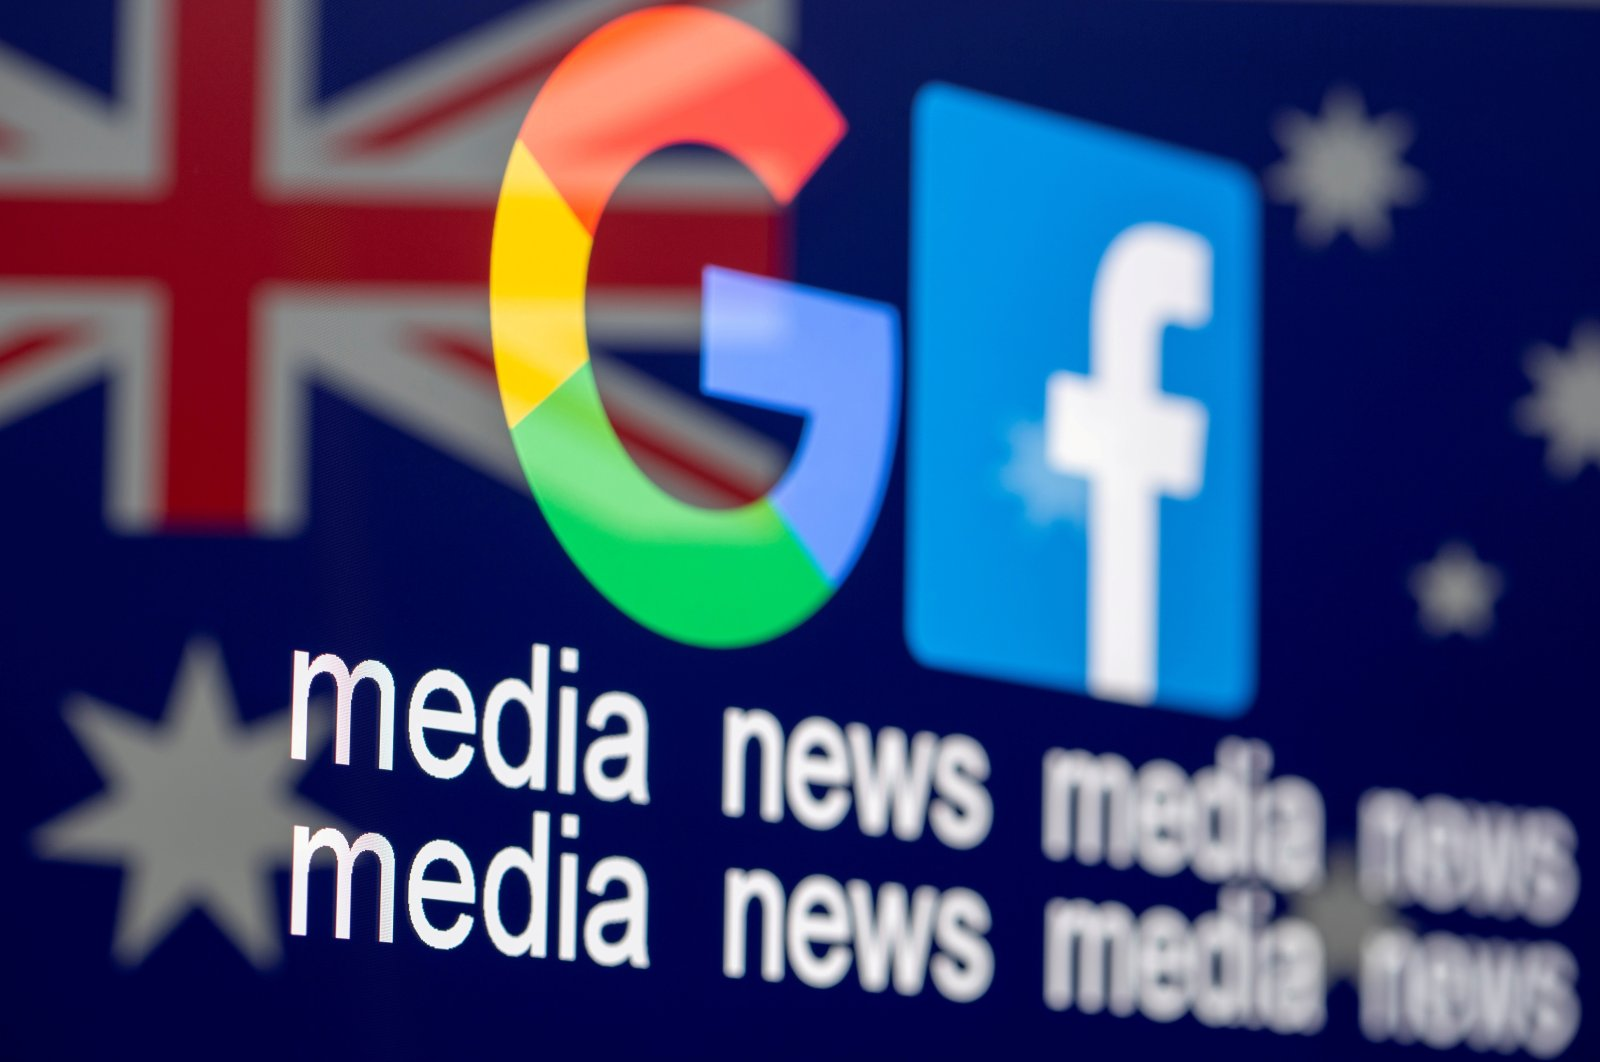 """The Google and Facebook logos, the words """"media, news, media"""" and the Australian flag are displayed in this illustration photo taken Feb. 18, 2021. (Reuters Photo)"""